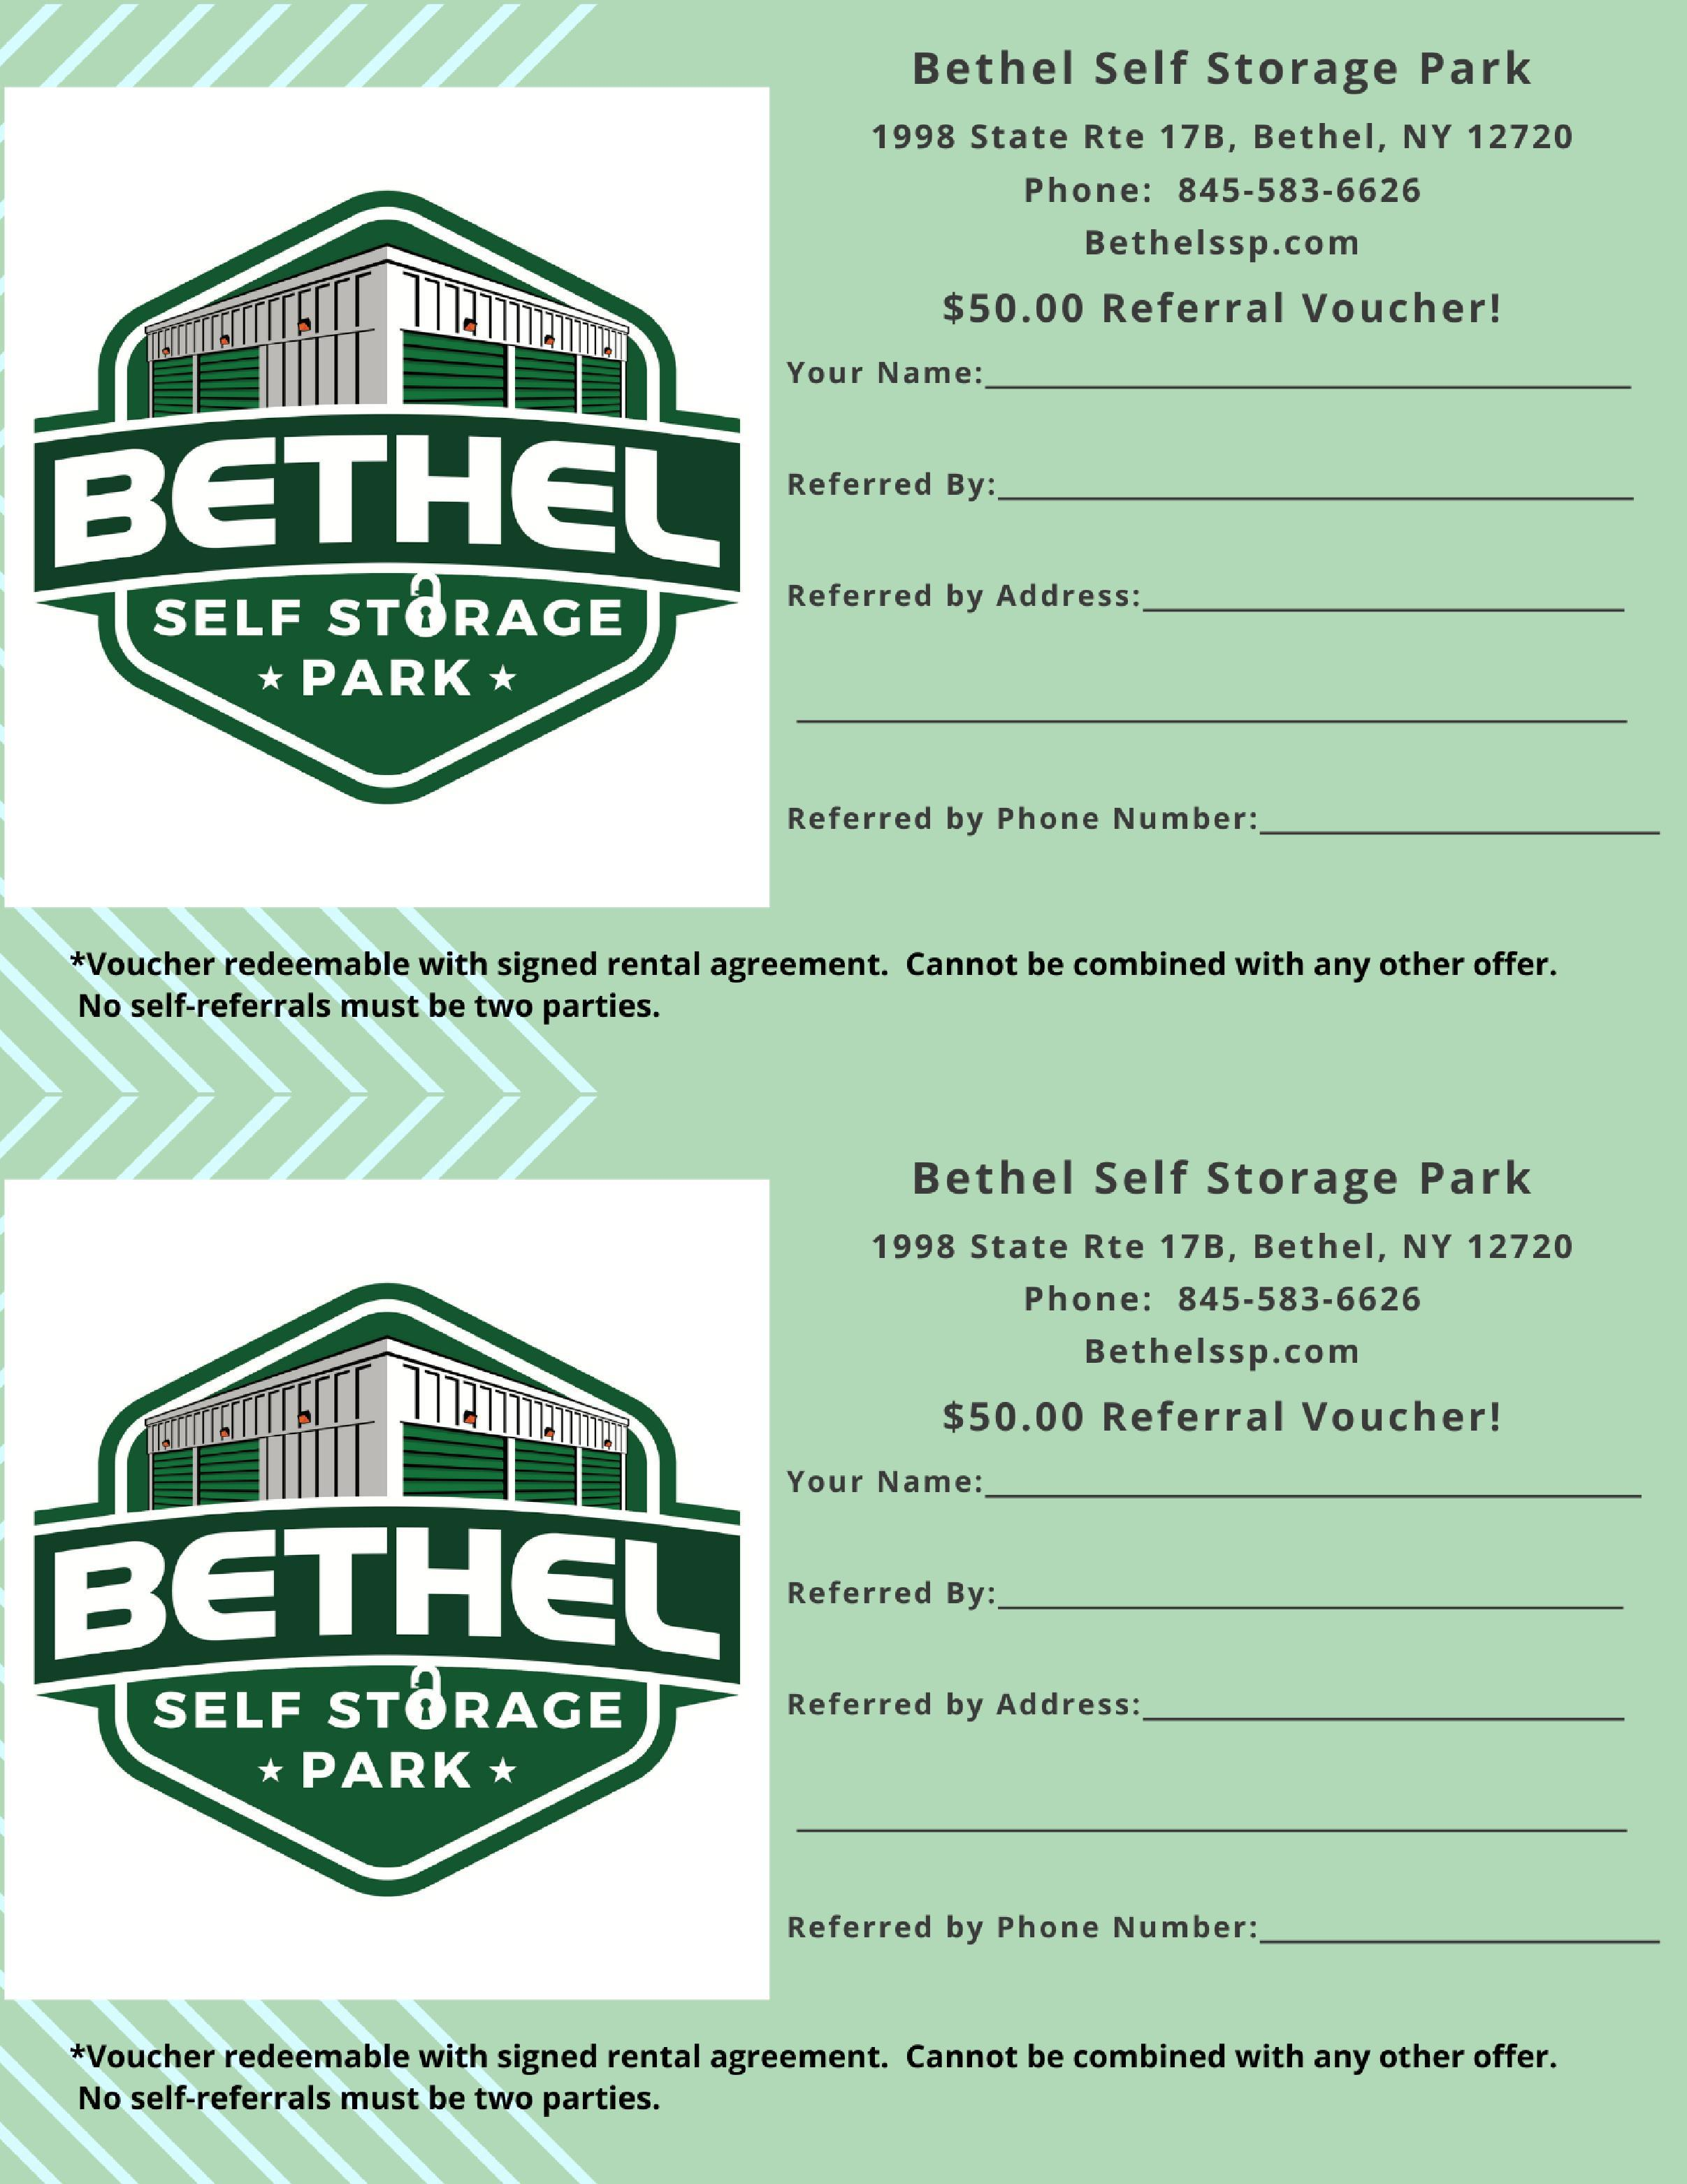 Referral Voucher for Bethel Self Storage Park